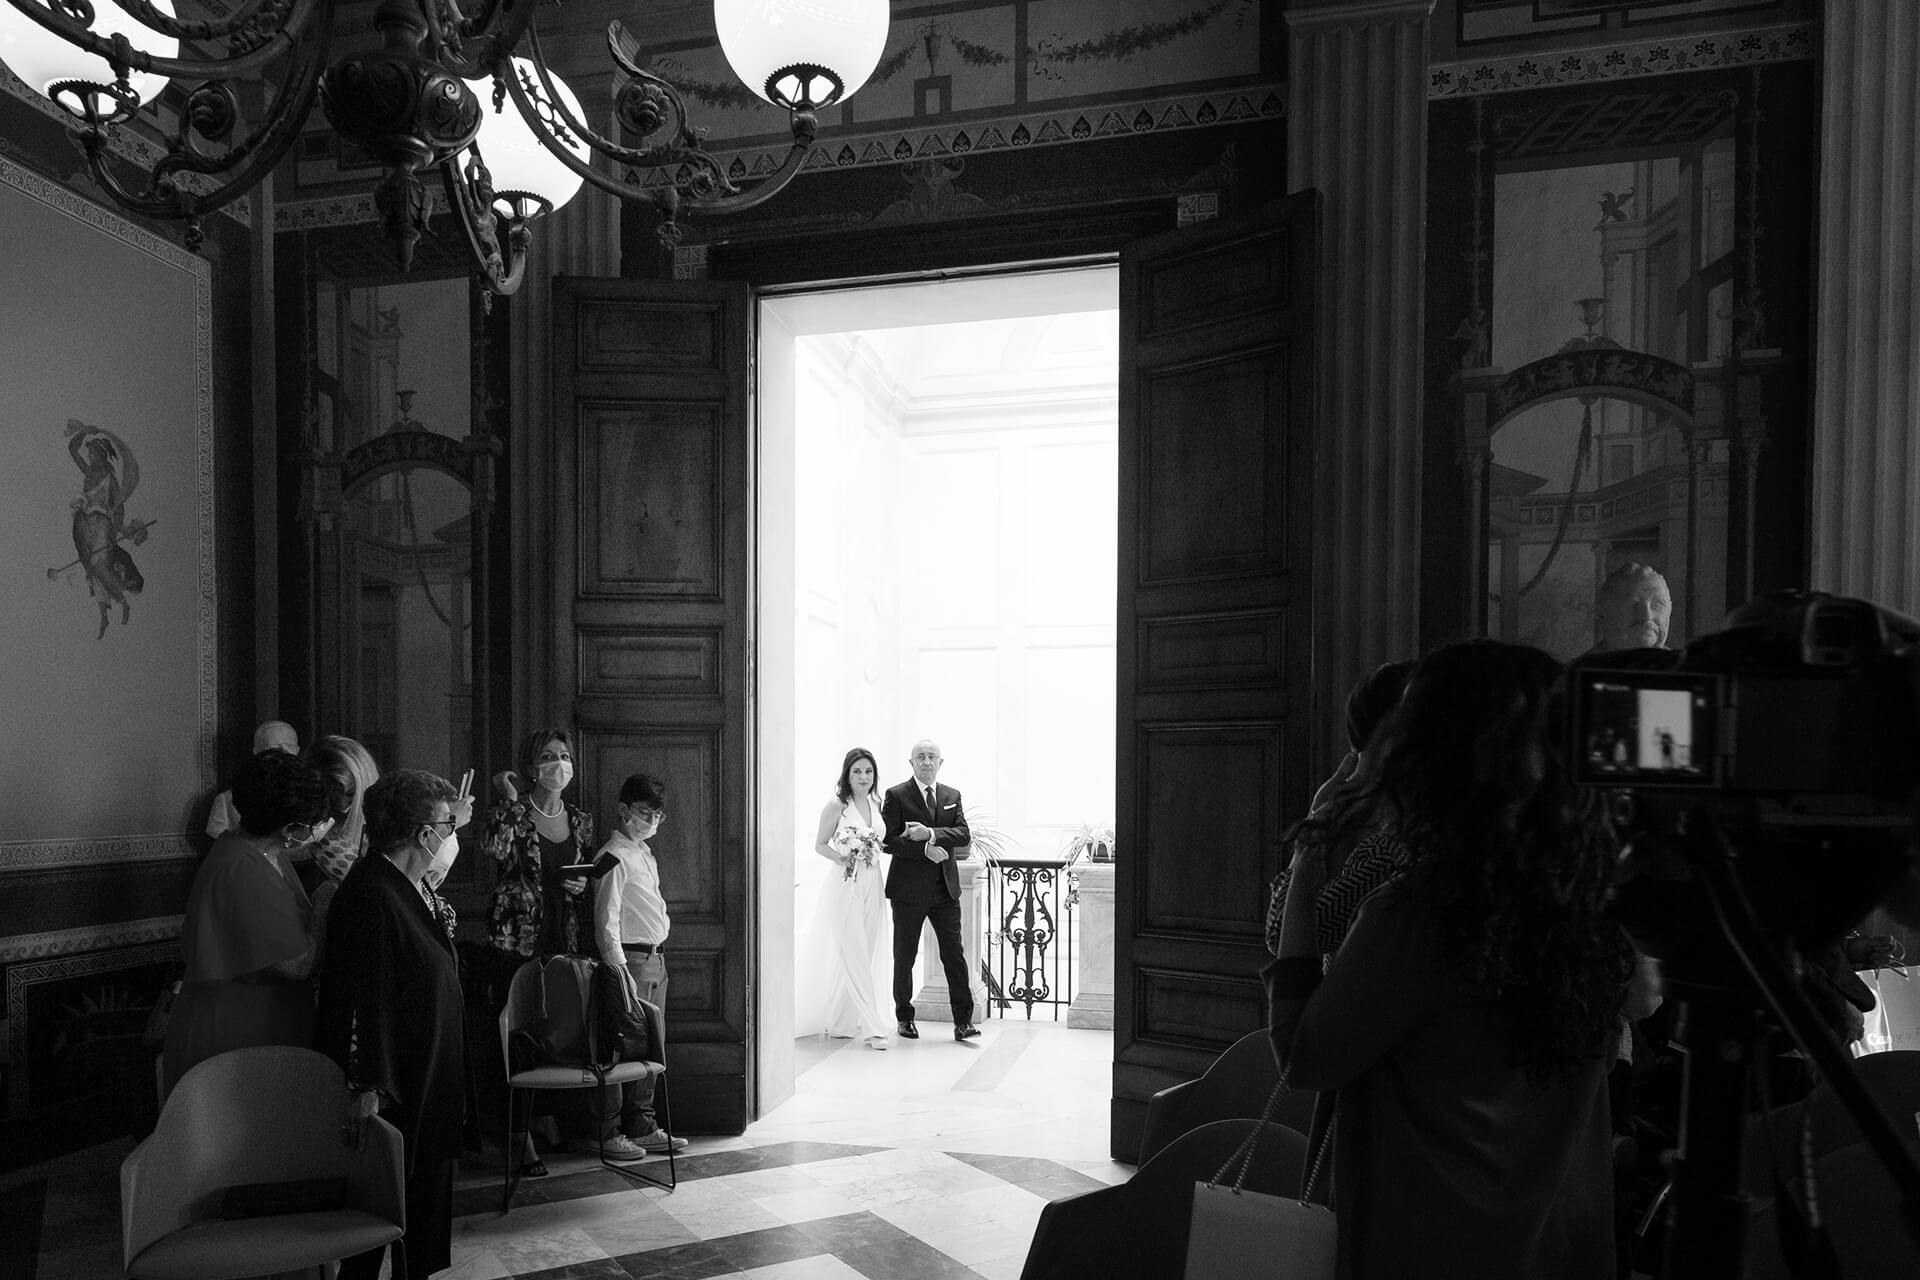 The Best Italy Wedding Photographers | All standing for the bride's entrance in the civil wedding hall